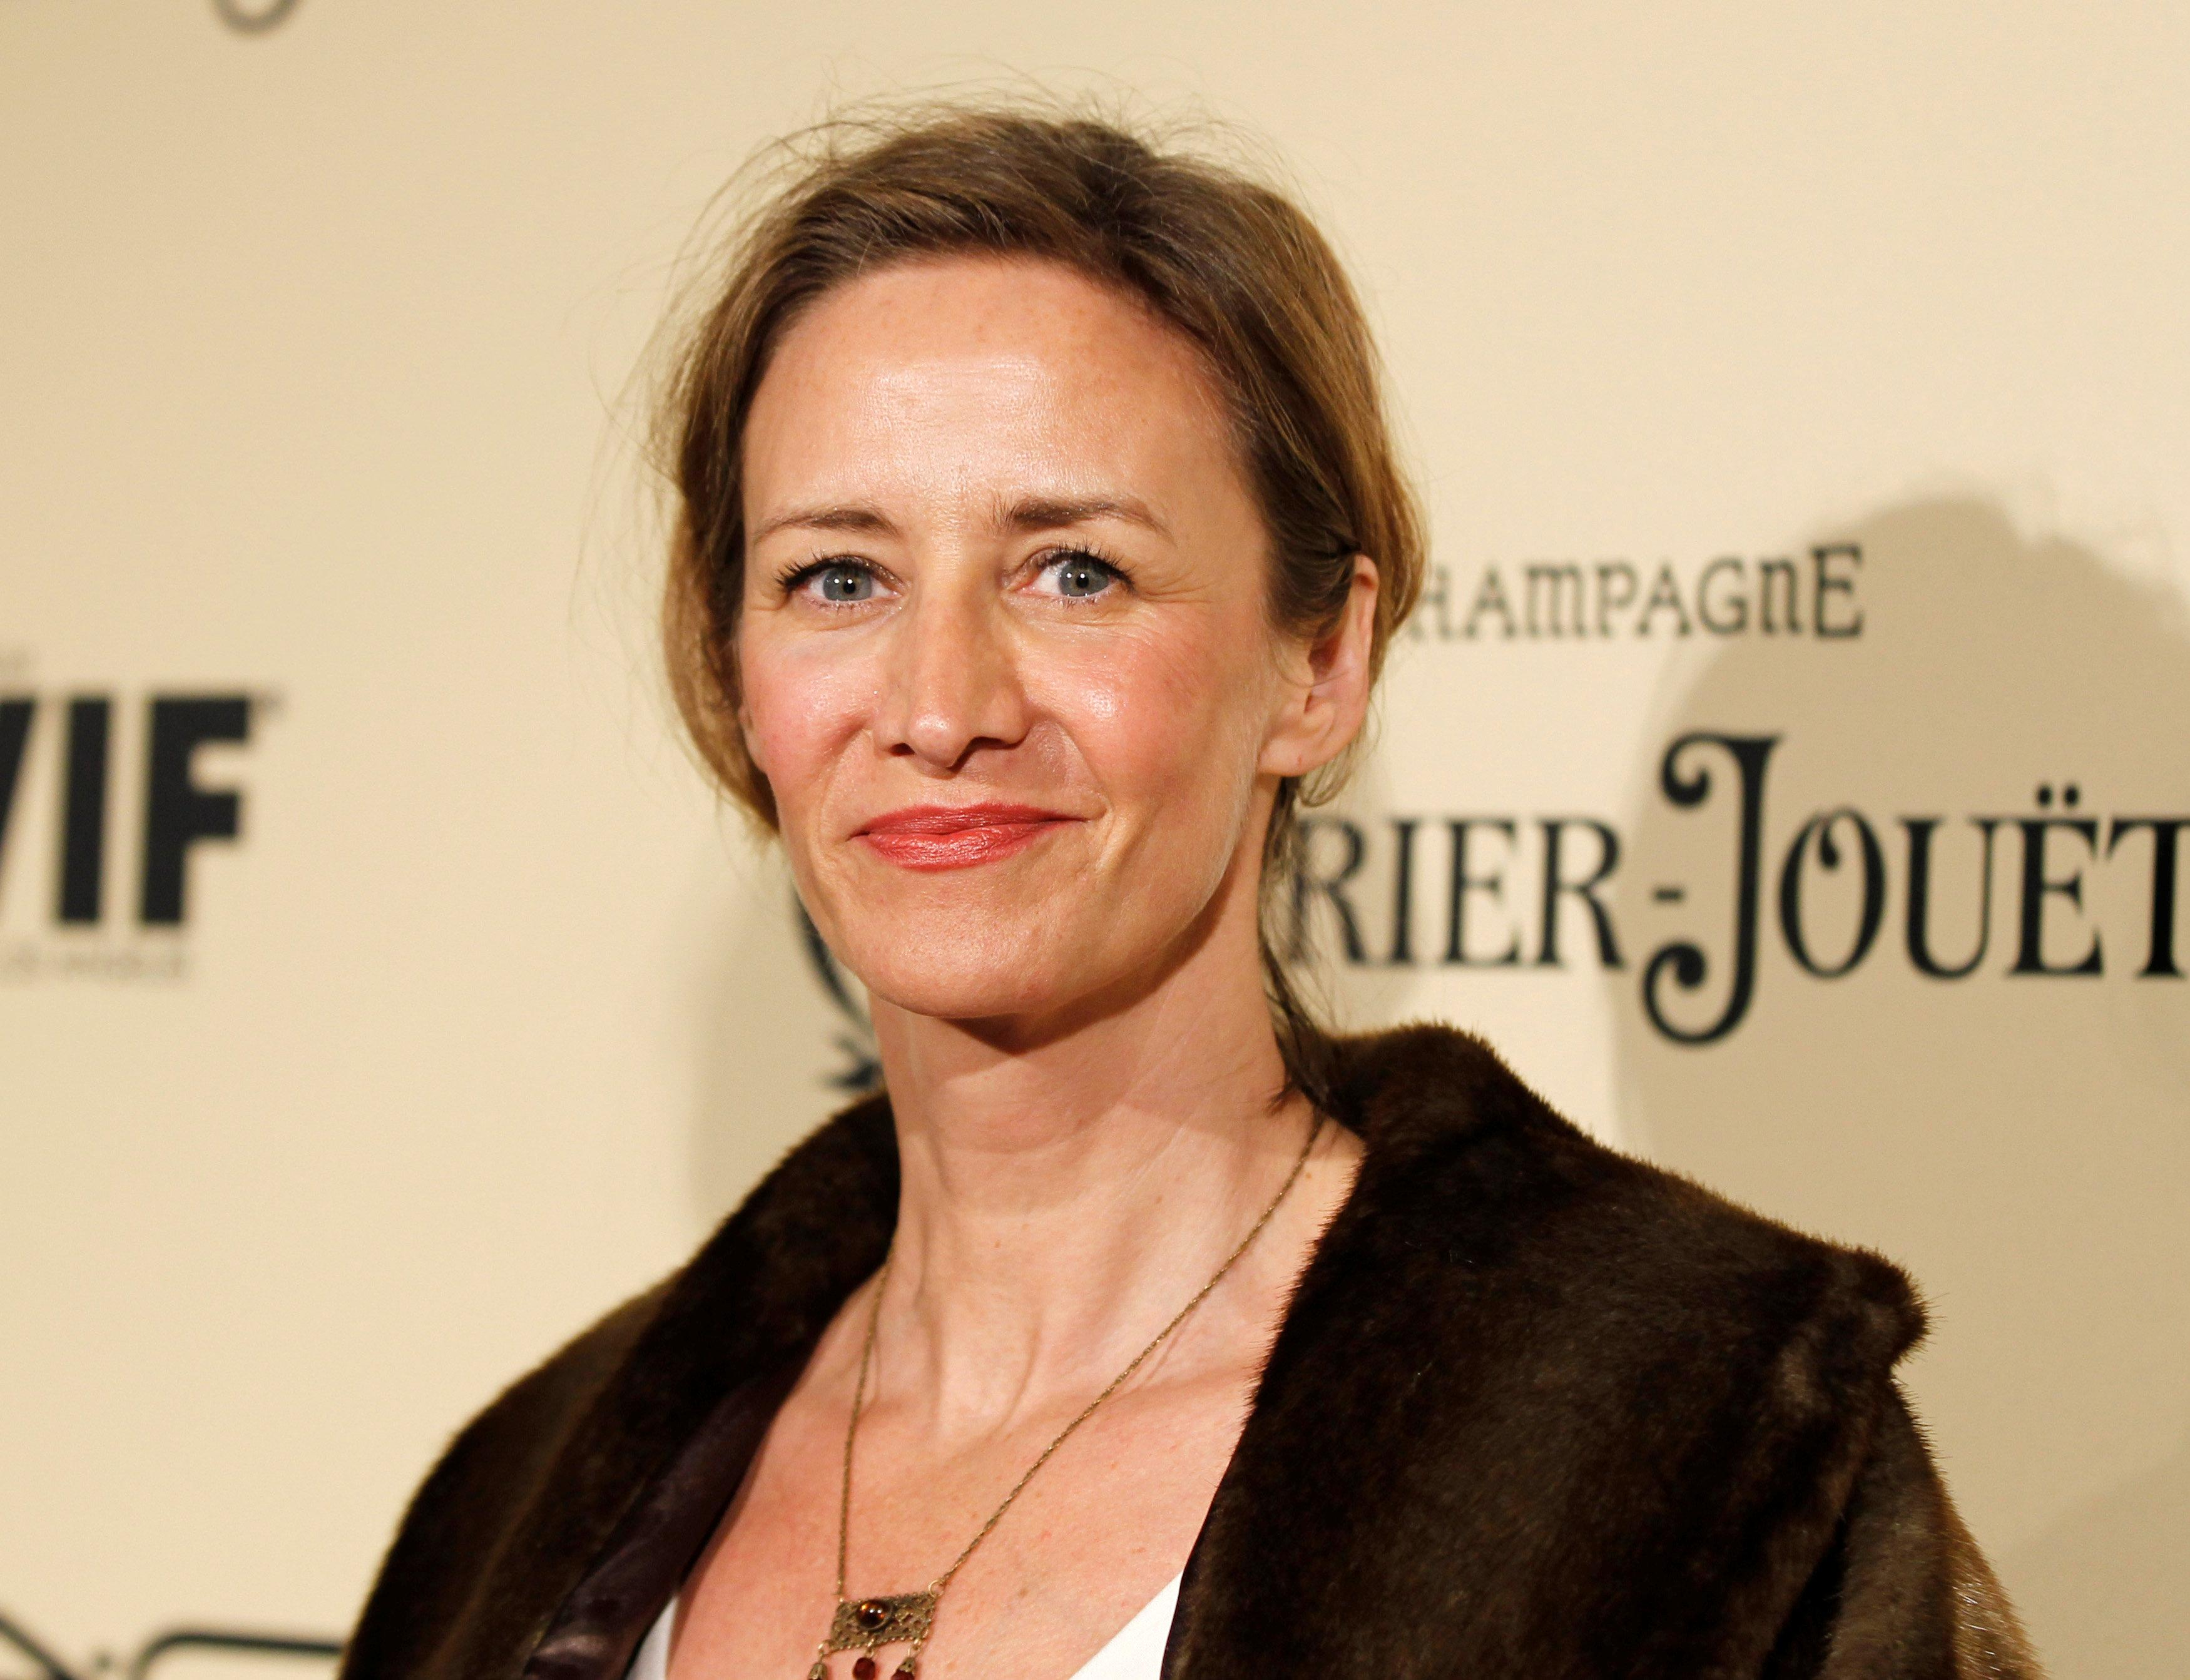 Actress Janet McTeer poses at the Women In Film pre-oscar cocktail party at Cecconi's in West Hollywood, California, U.S., February 24, 2012.   Danny Moloshok